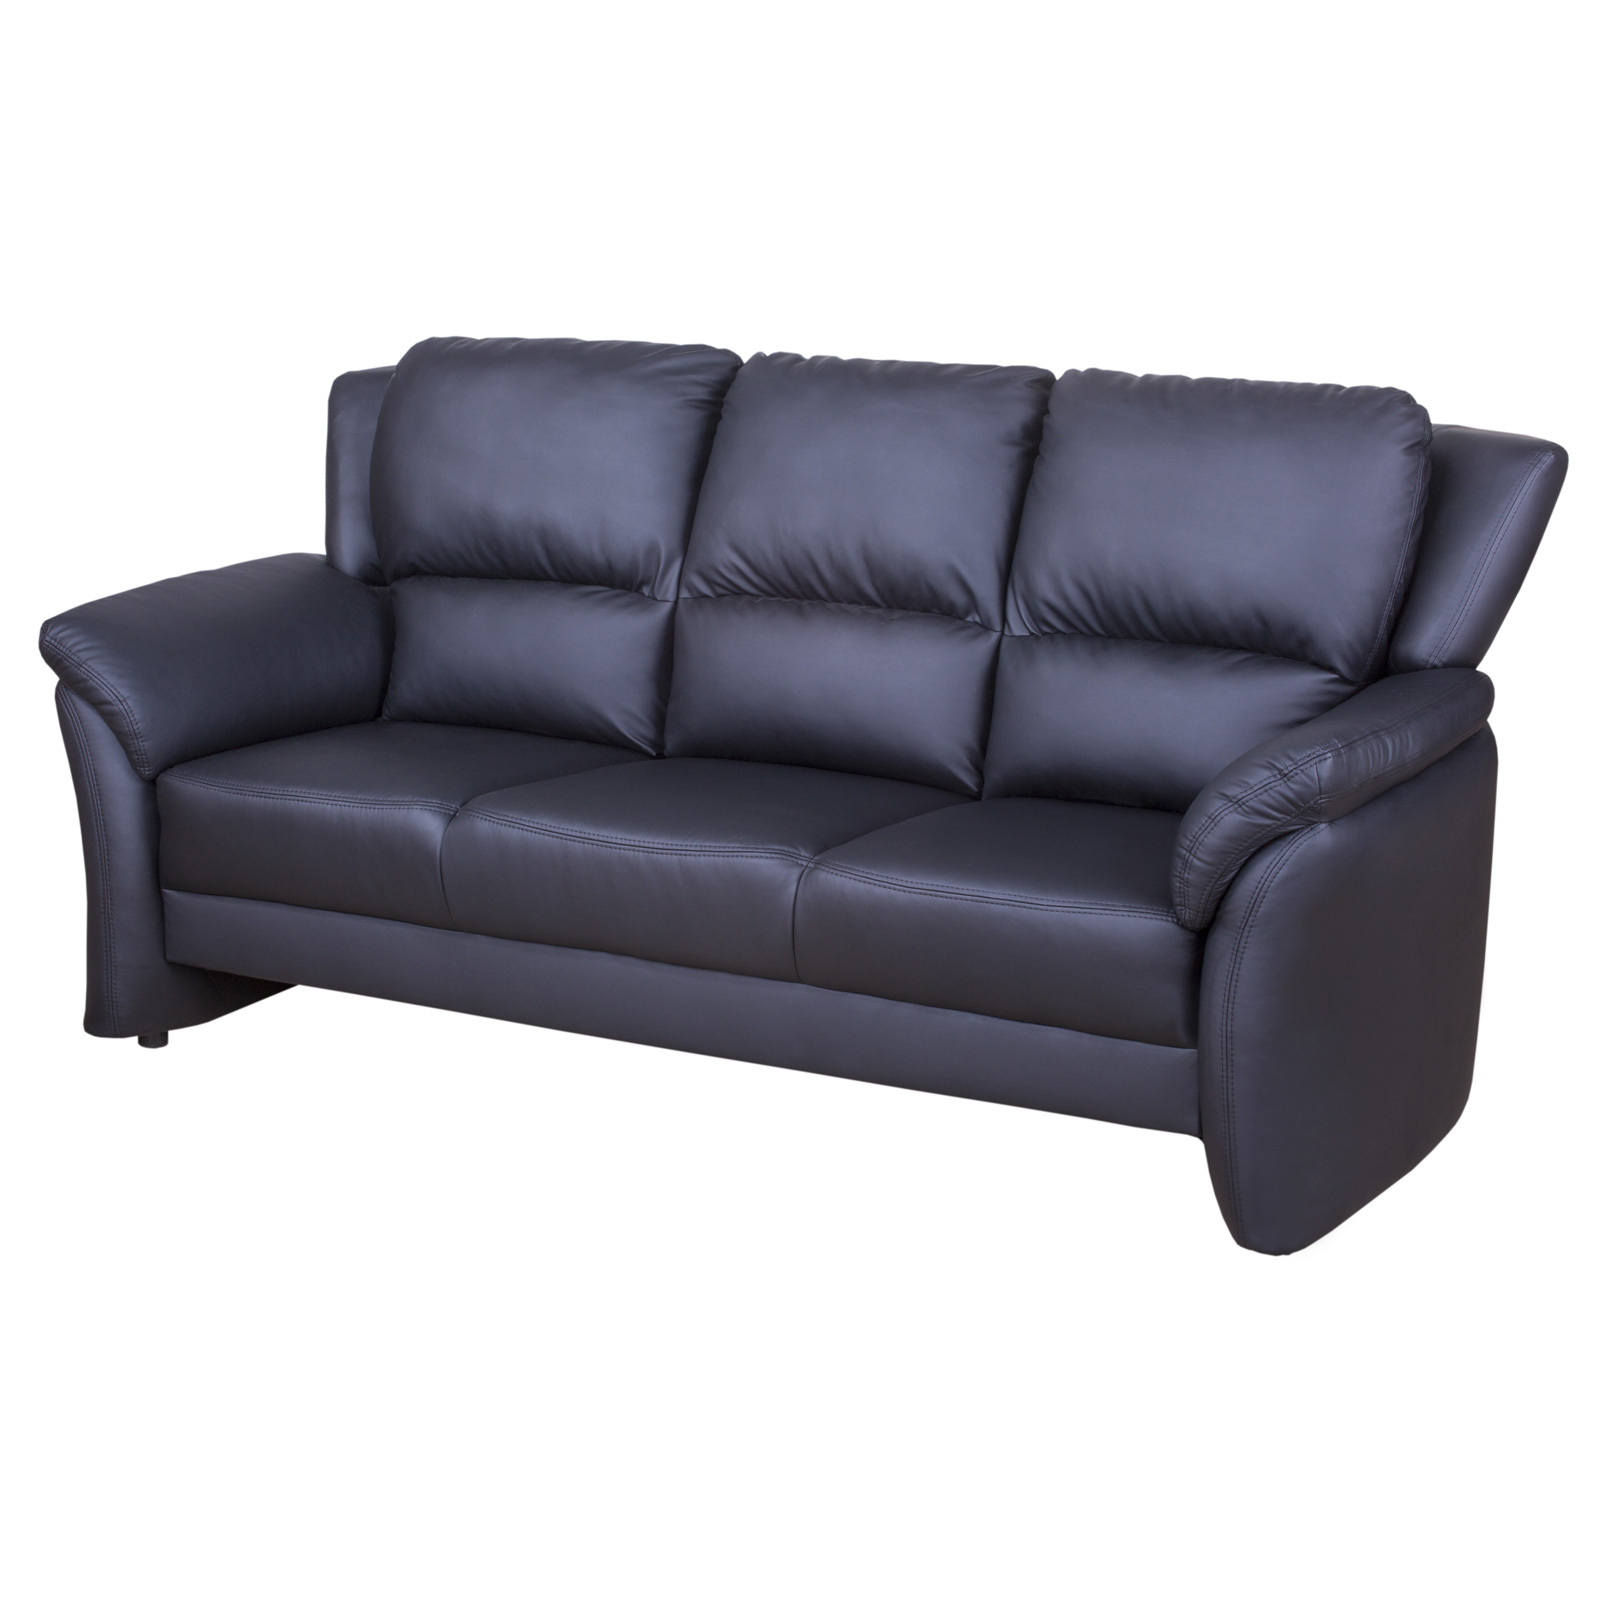 sofa 3 sitzer pisa einzelsofa couch polsterm bel in schwarz lederlook 201 cm ebay. Black Bedroom Furniture Sets. Home Design Ideas